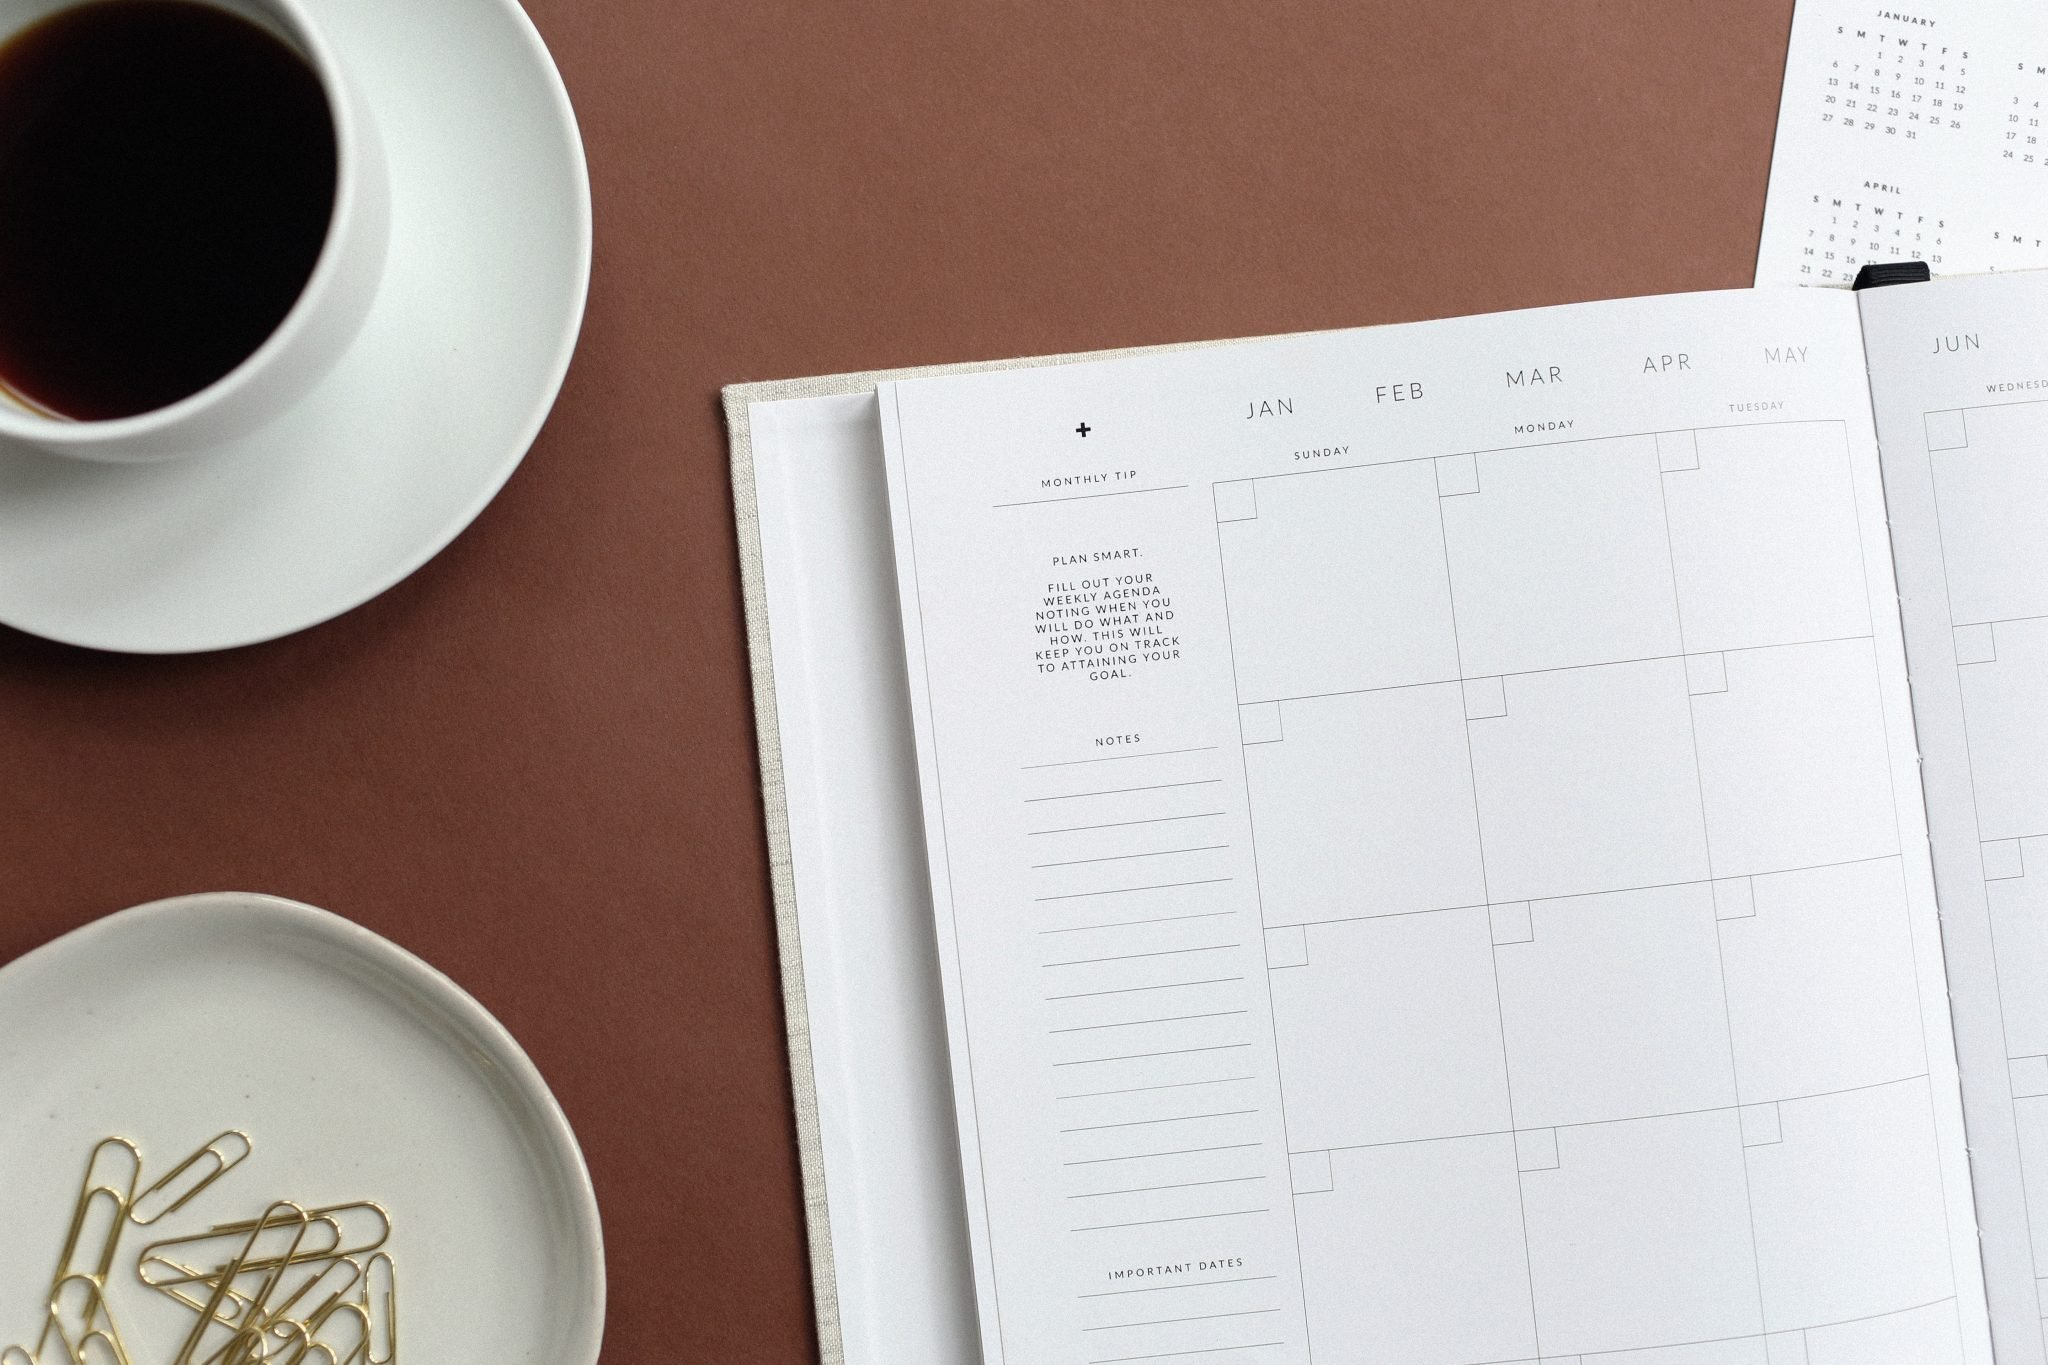 The $32 Self-Improvement Planner That Entrepreneurs Swear By